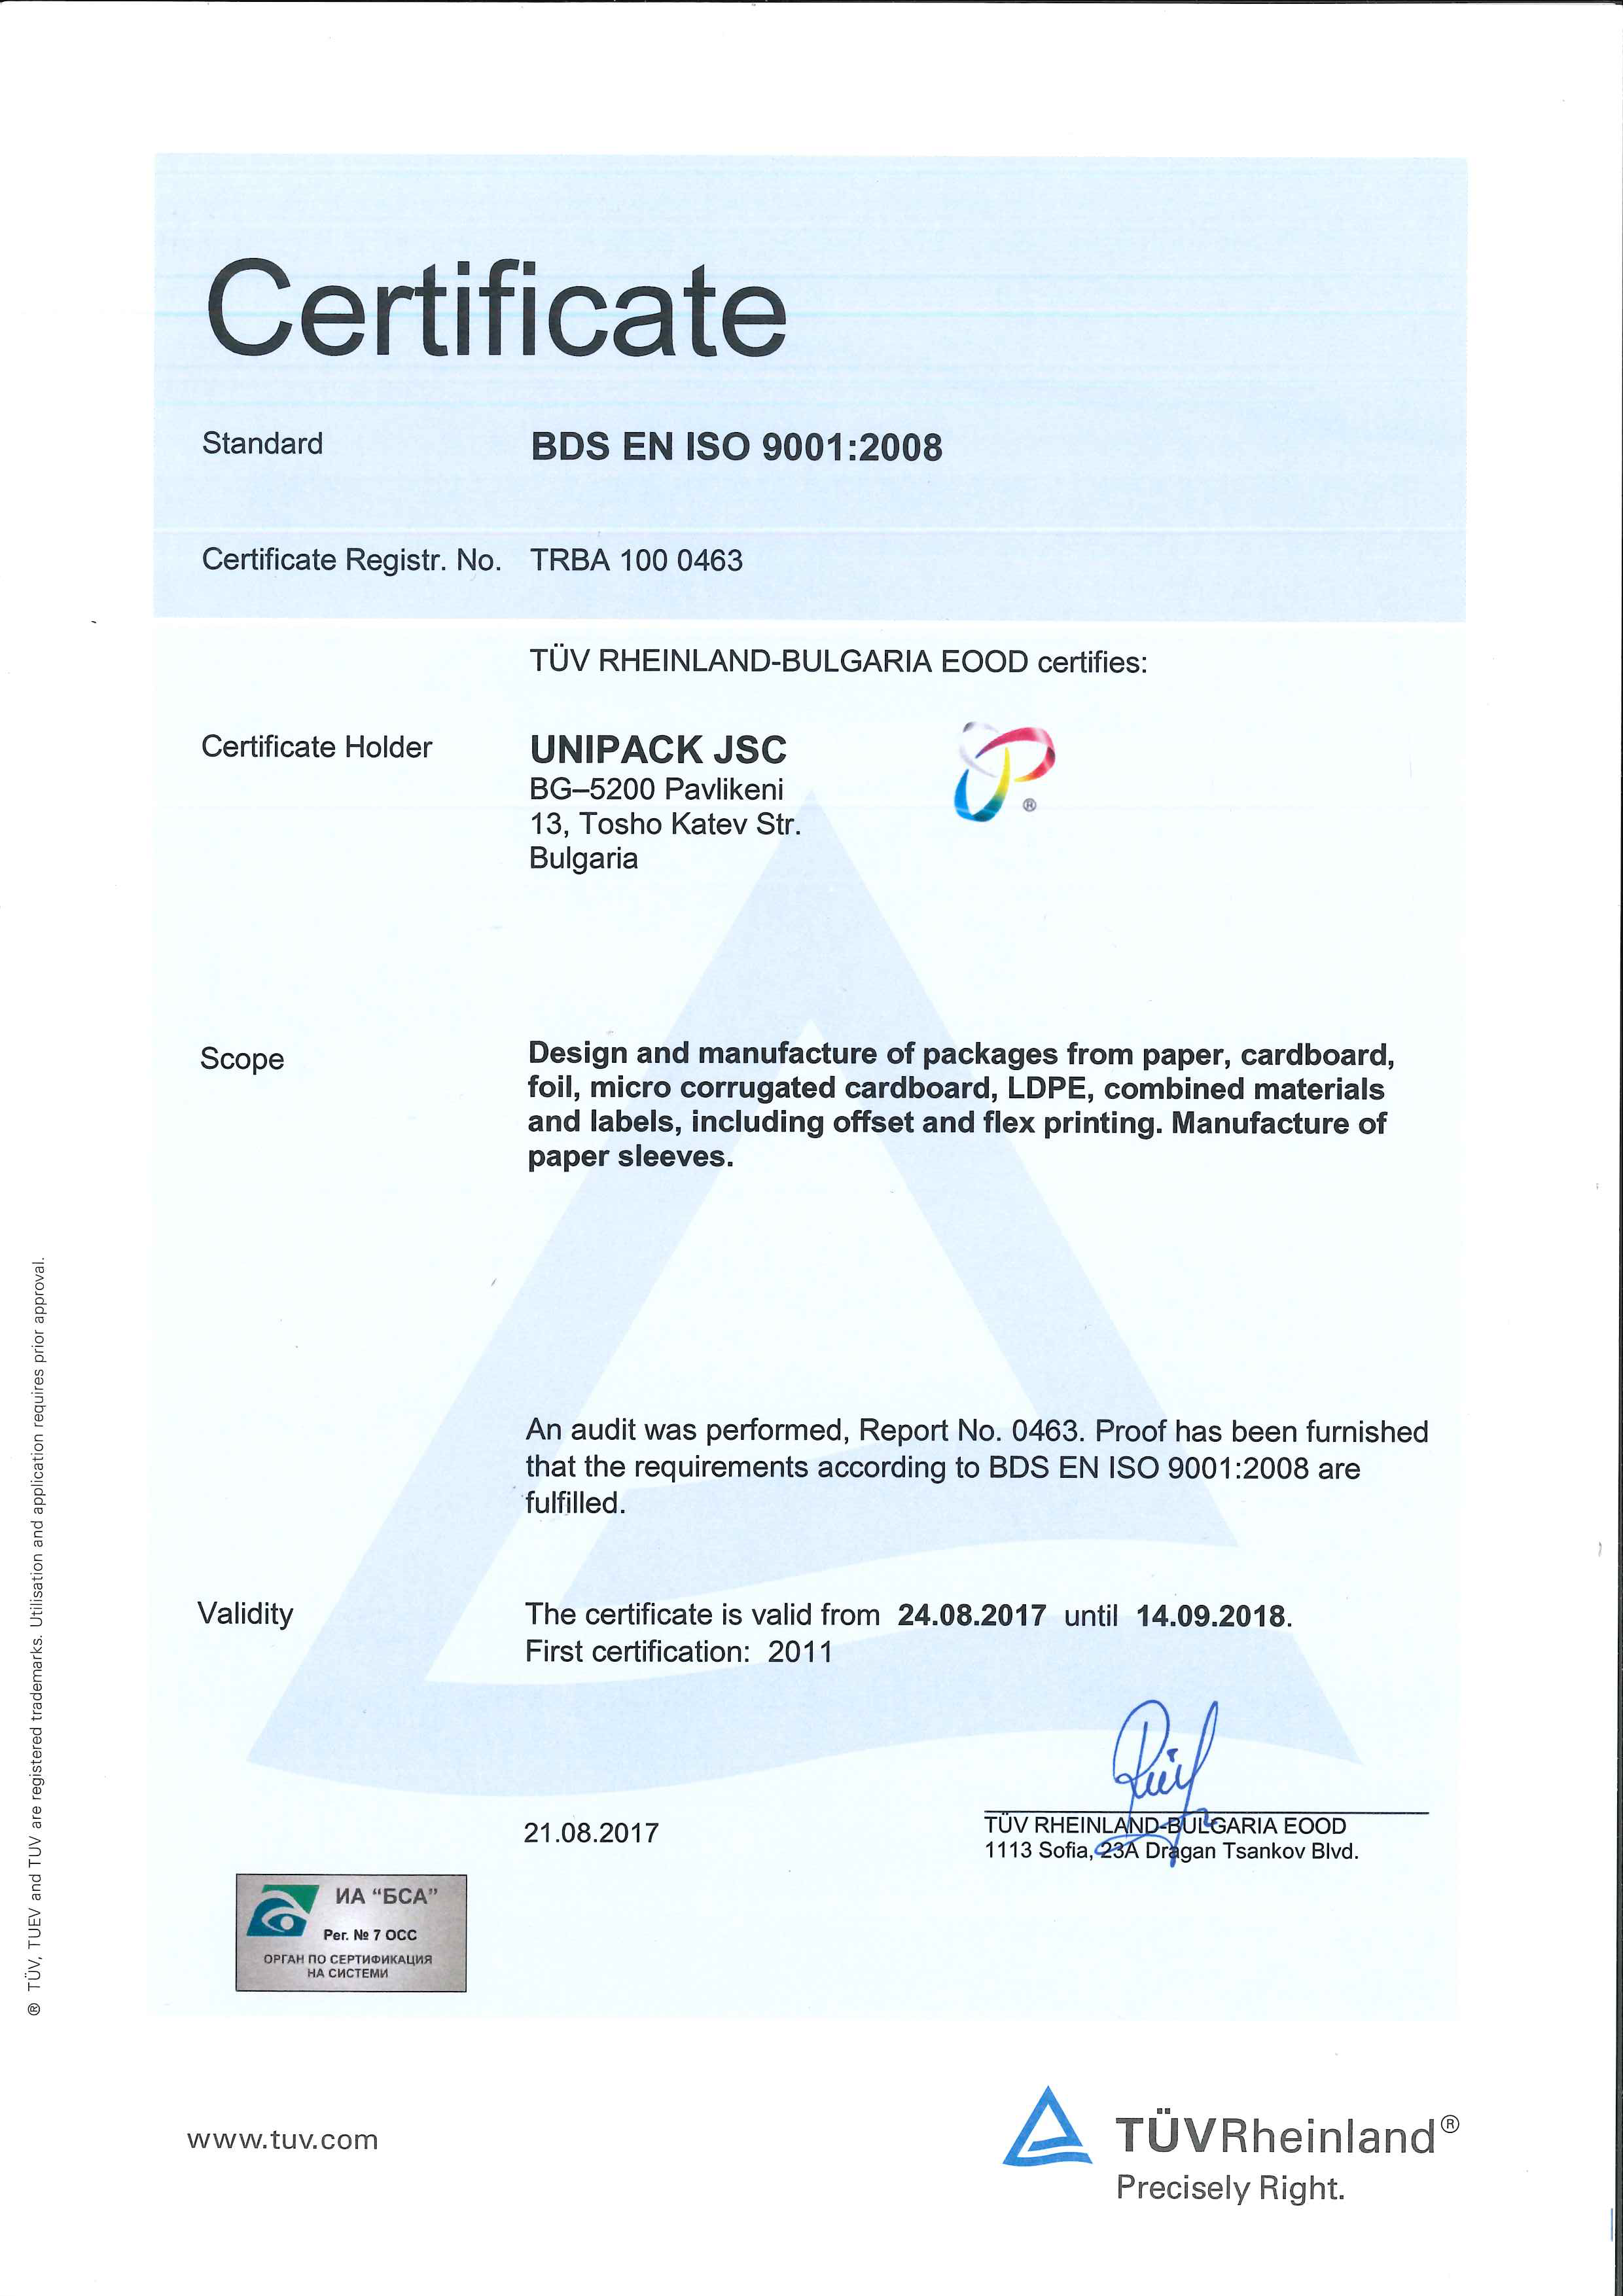 An ISO 9001:2008 and HACCP certified company - Unipackbg com